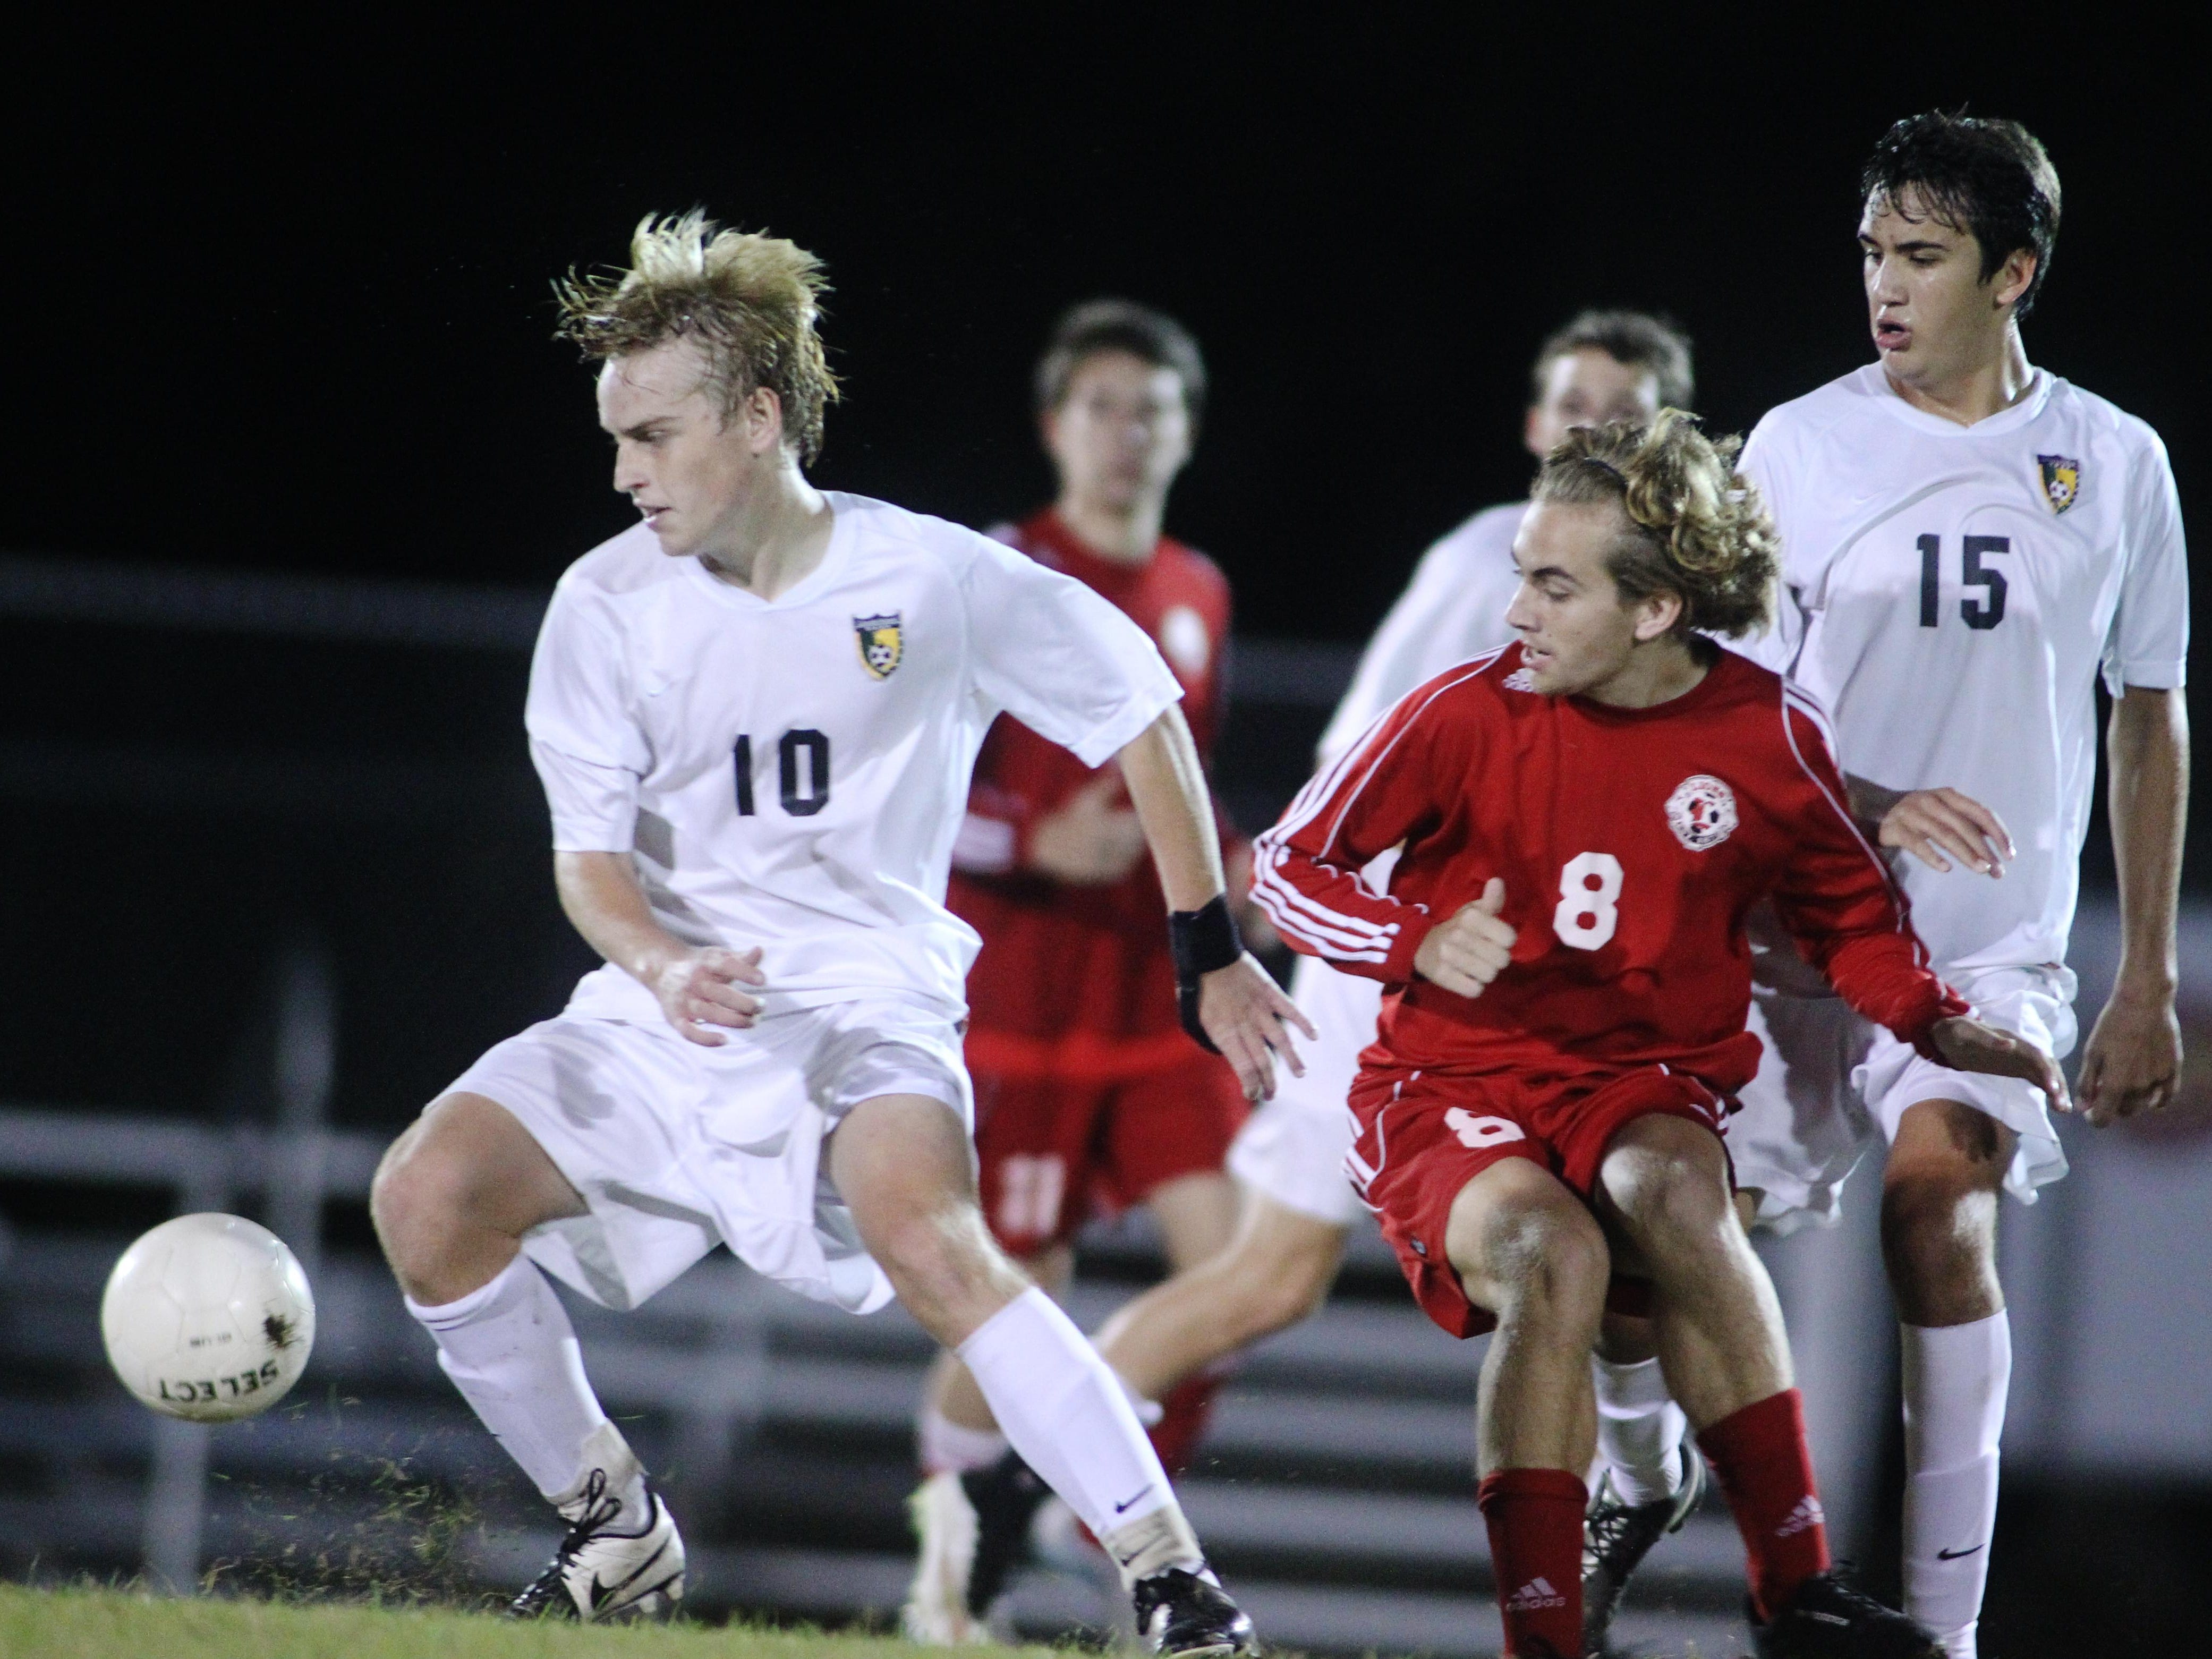 Lincoln's Christian Wnuk and Leon's Jake Kile fight for possession during a game Tuesday night. The Trojans won 2-1.